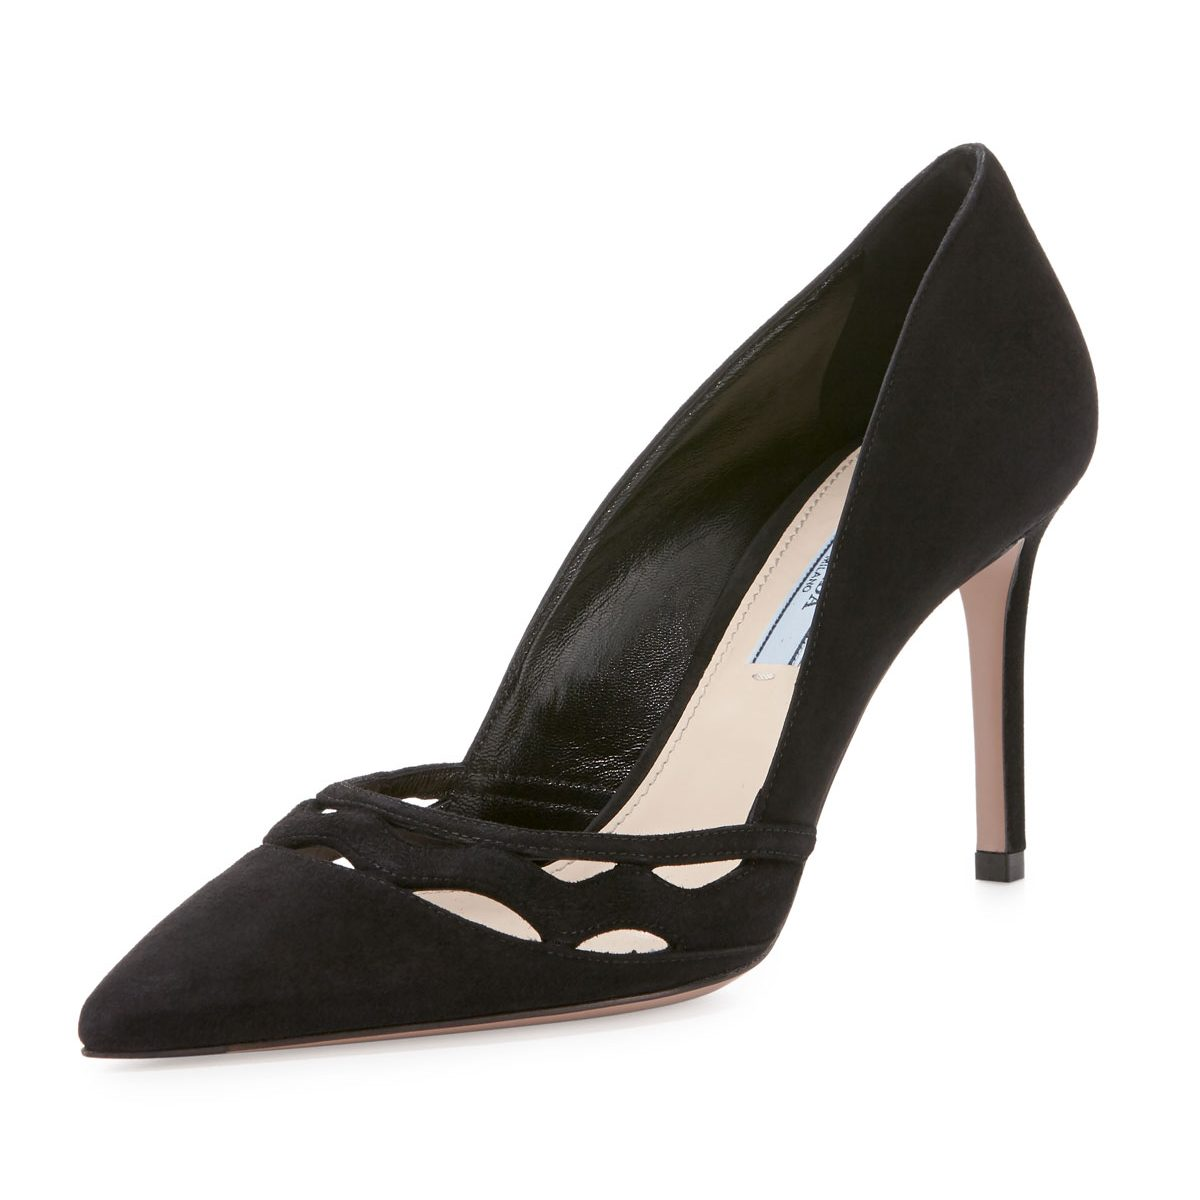 Prada Wavy-cut Suede Pumps